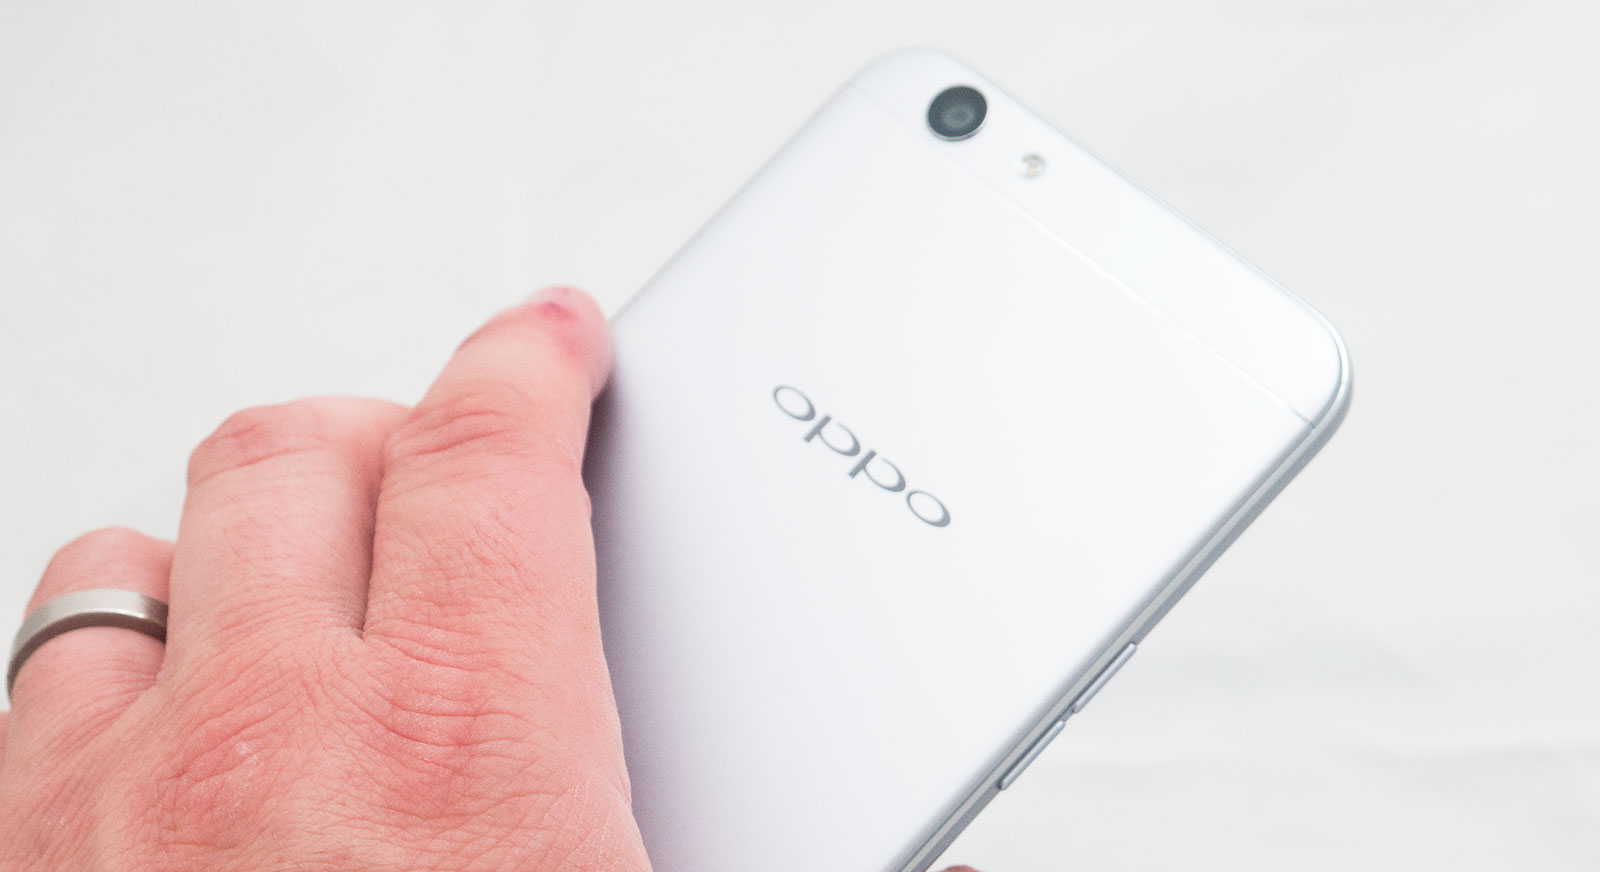 Review Oppo F1s